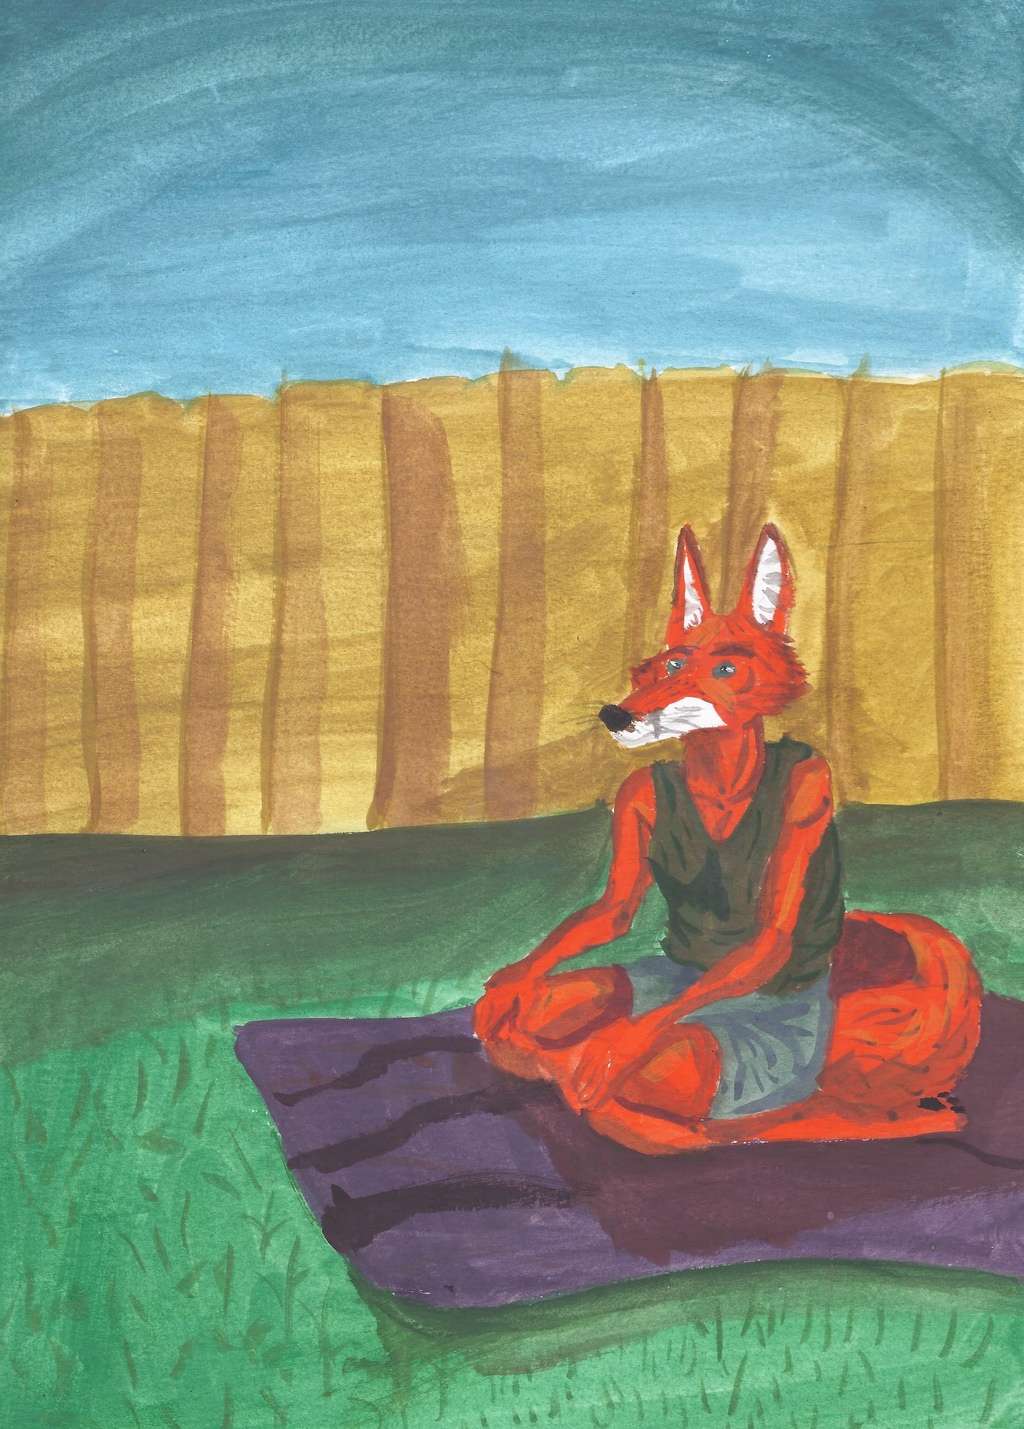 Most recent image: Painted Fox